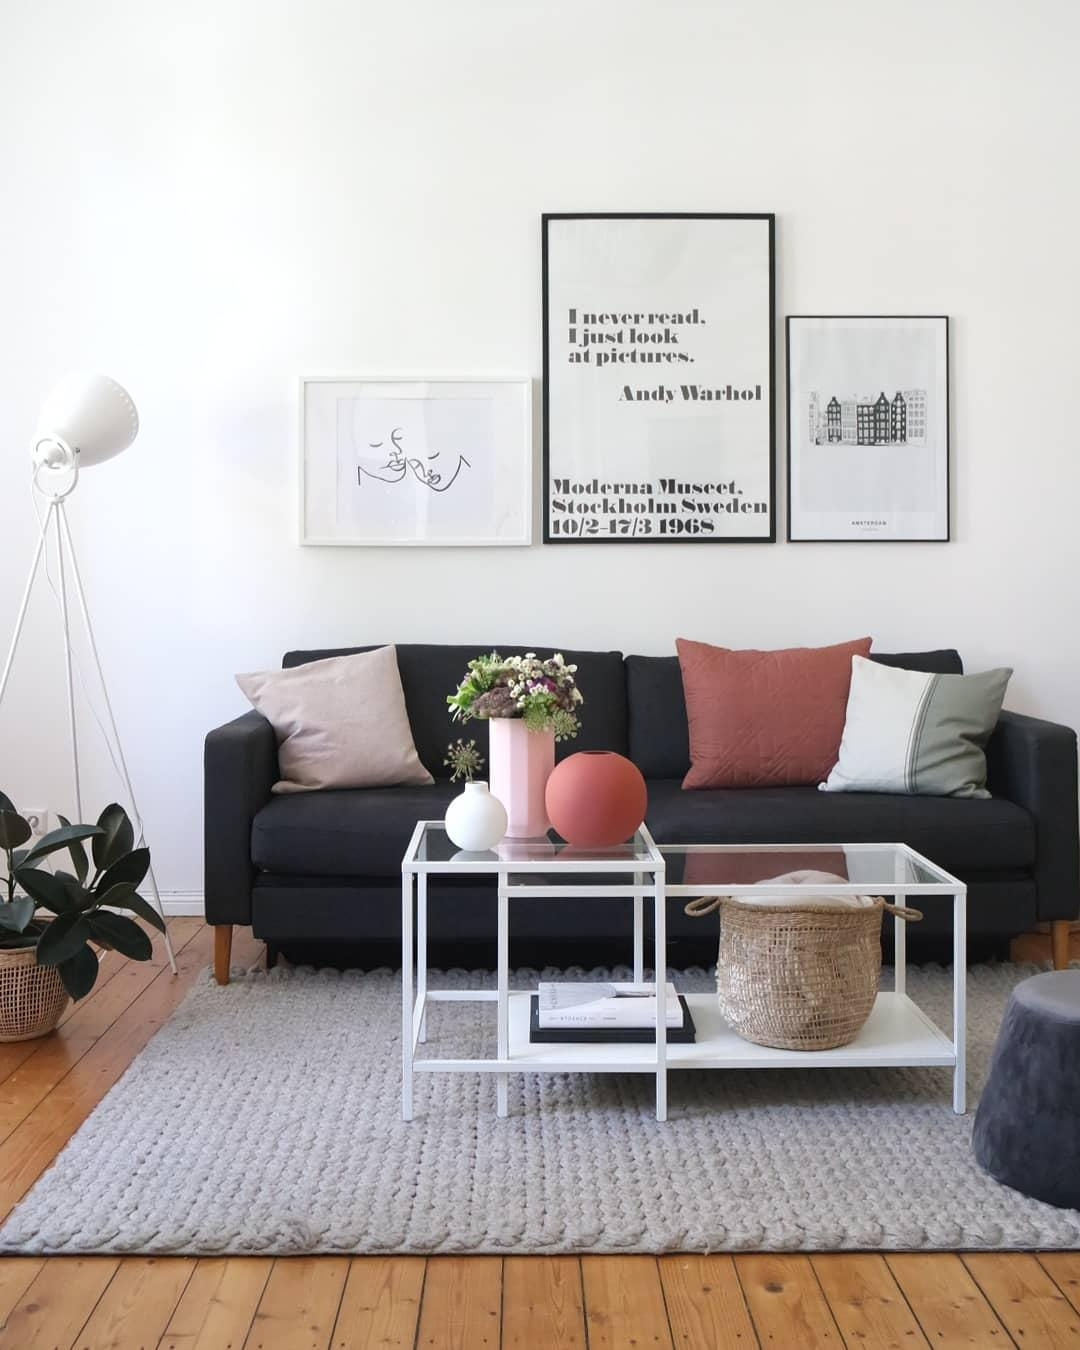 #wohnzimmer #livingroom #inspo  #altbauliebe #simplicity #cozyhome